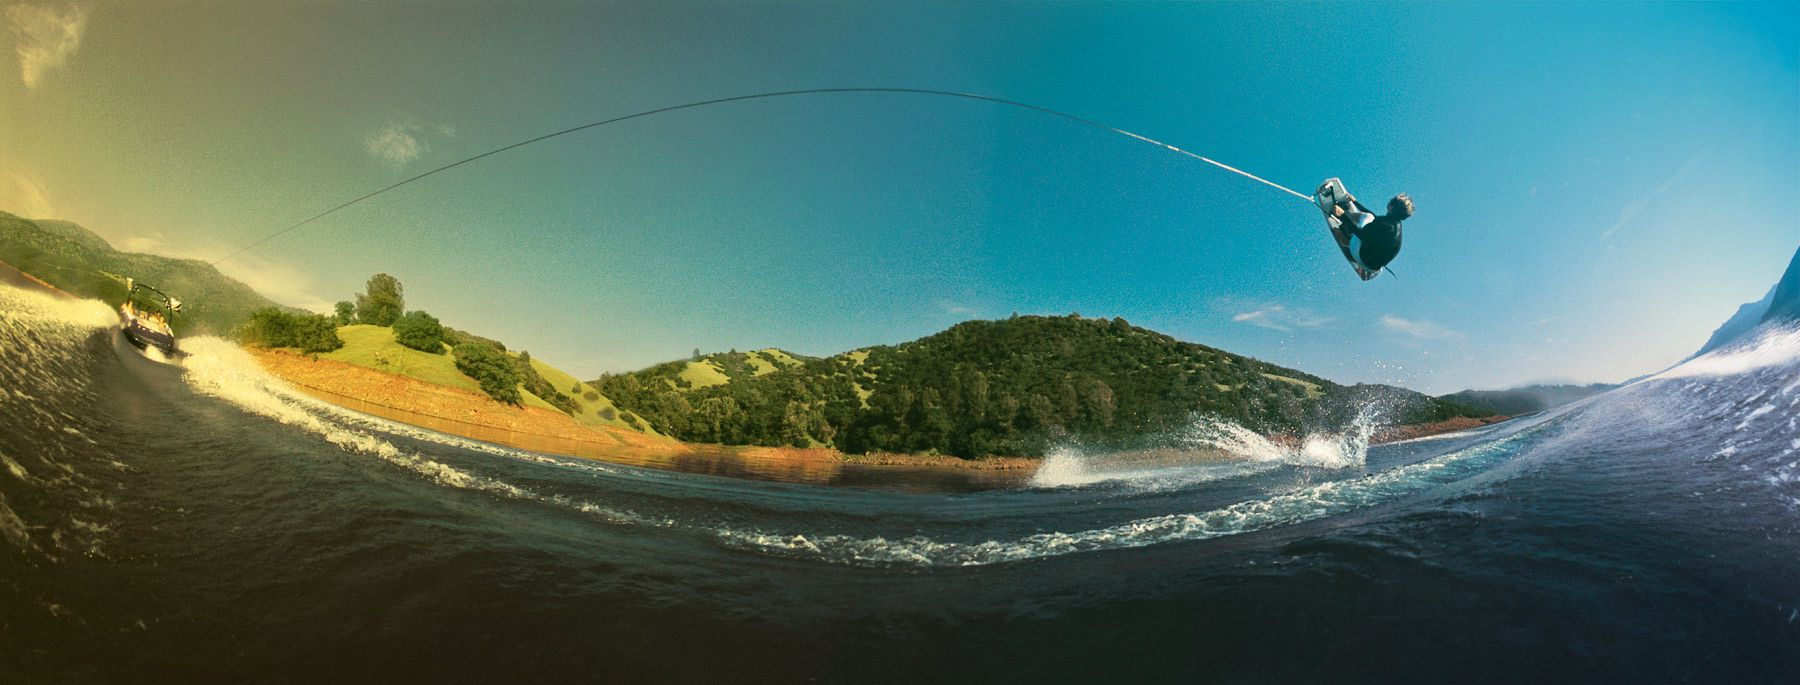 1wakeboarder_panorama